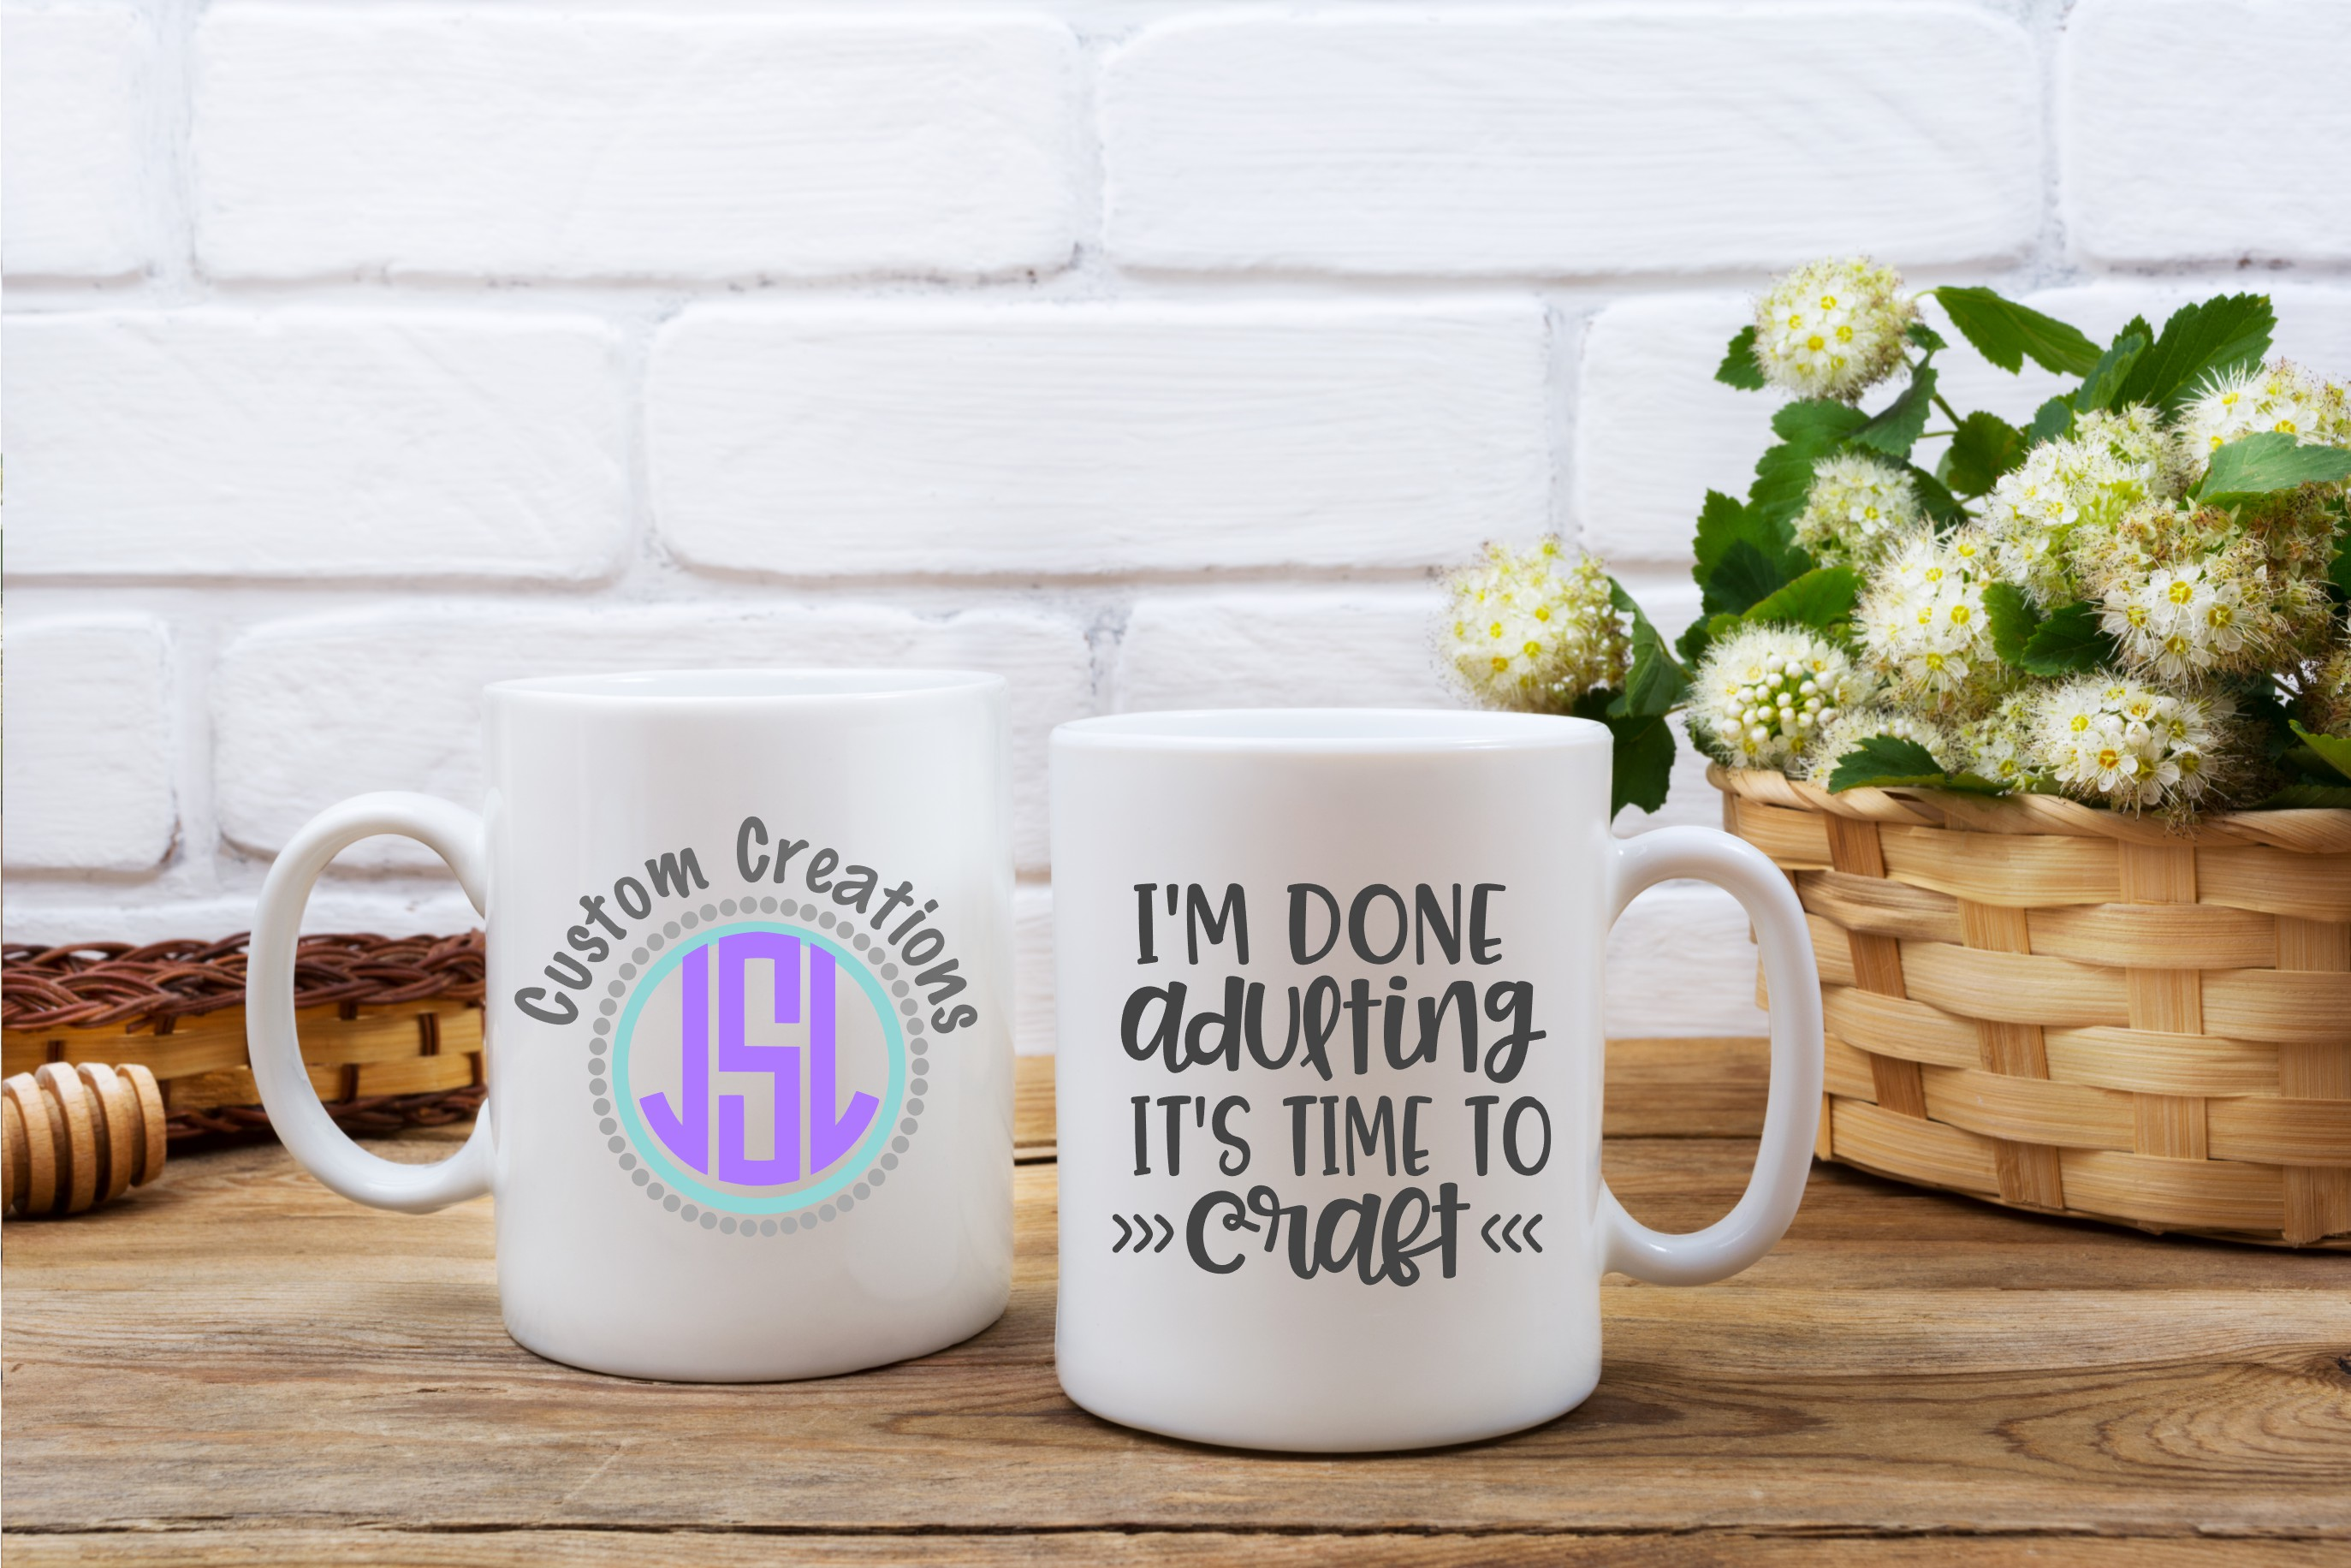 I'm Done Adulting It's Time to Craft| SVG DXF EPS PNG Files example image 2